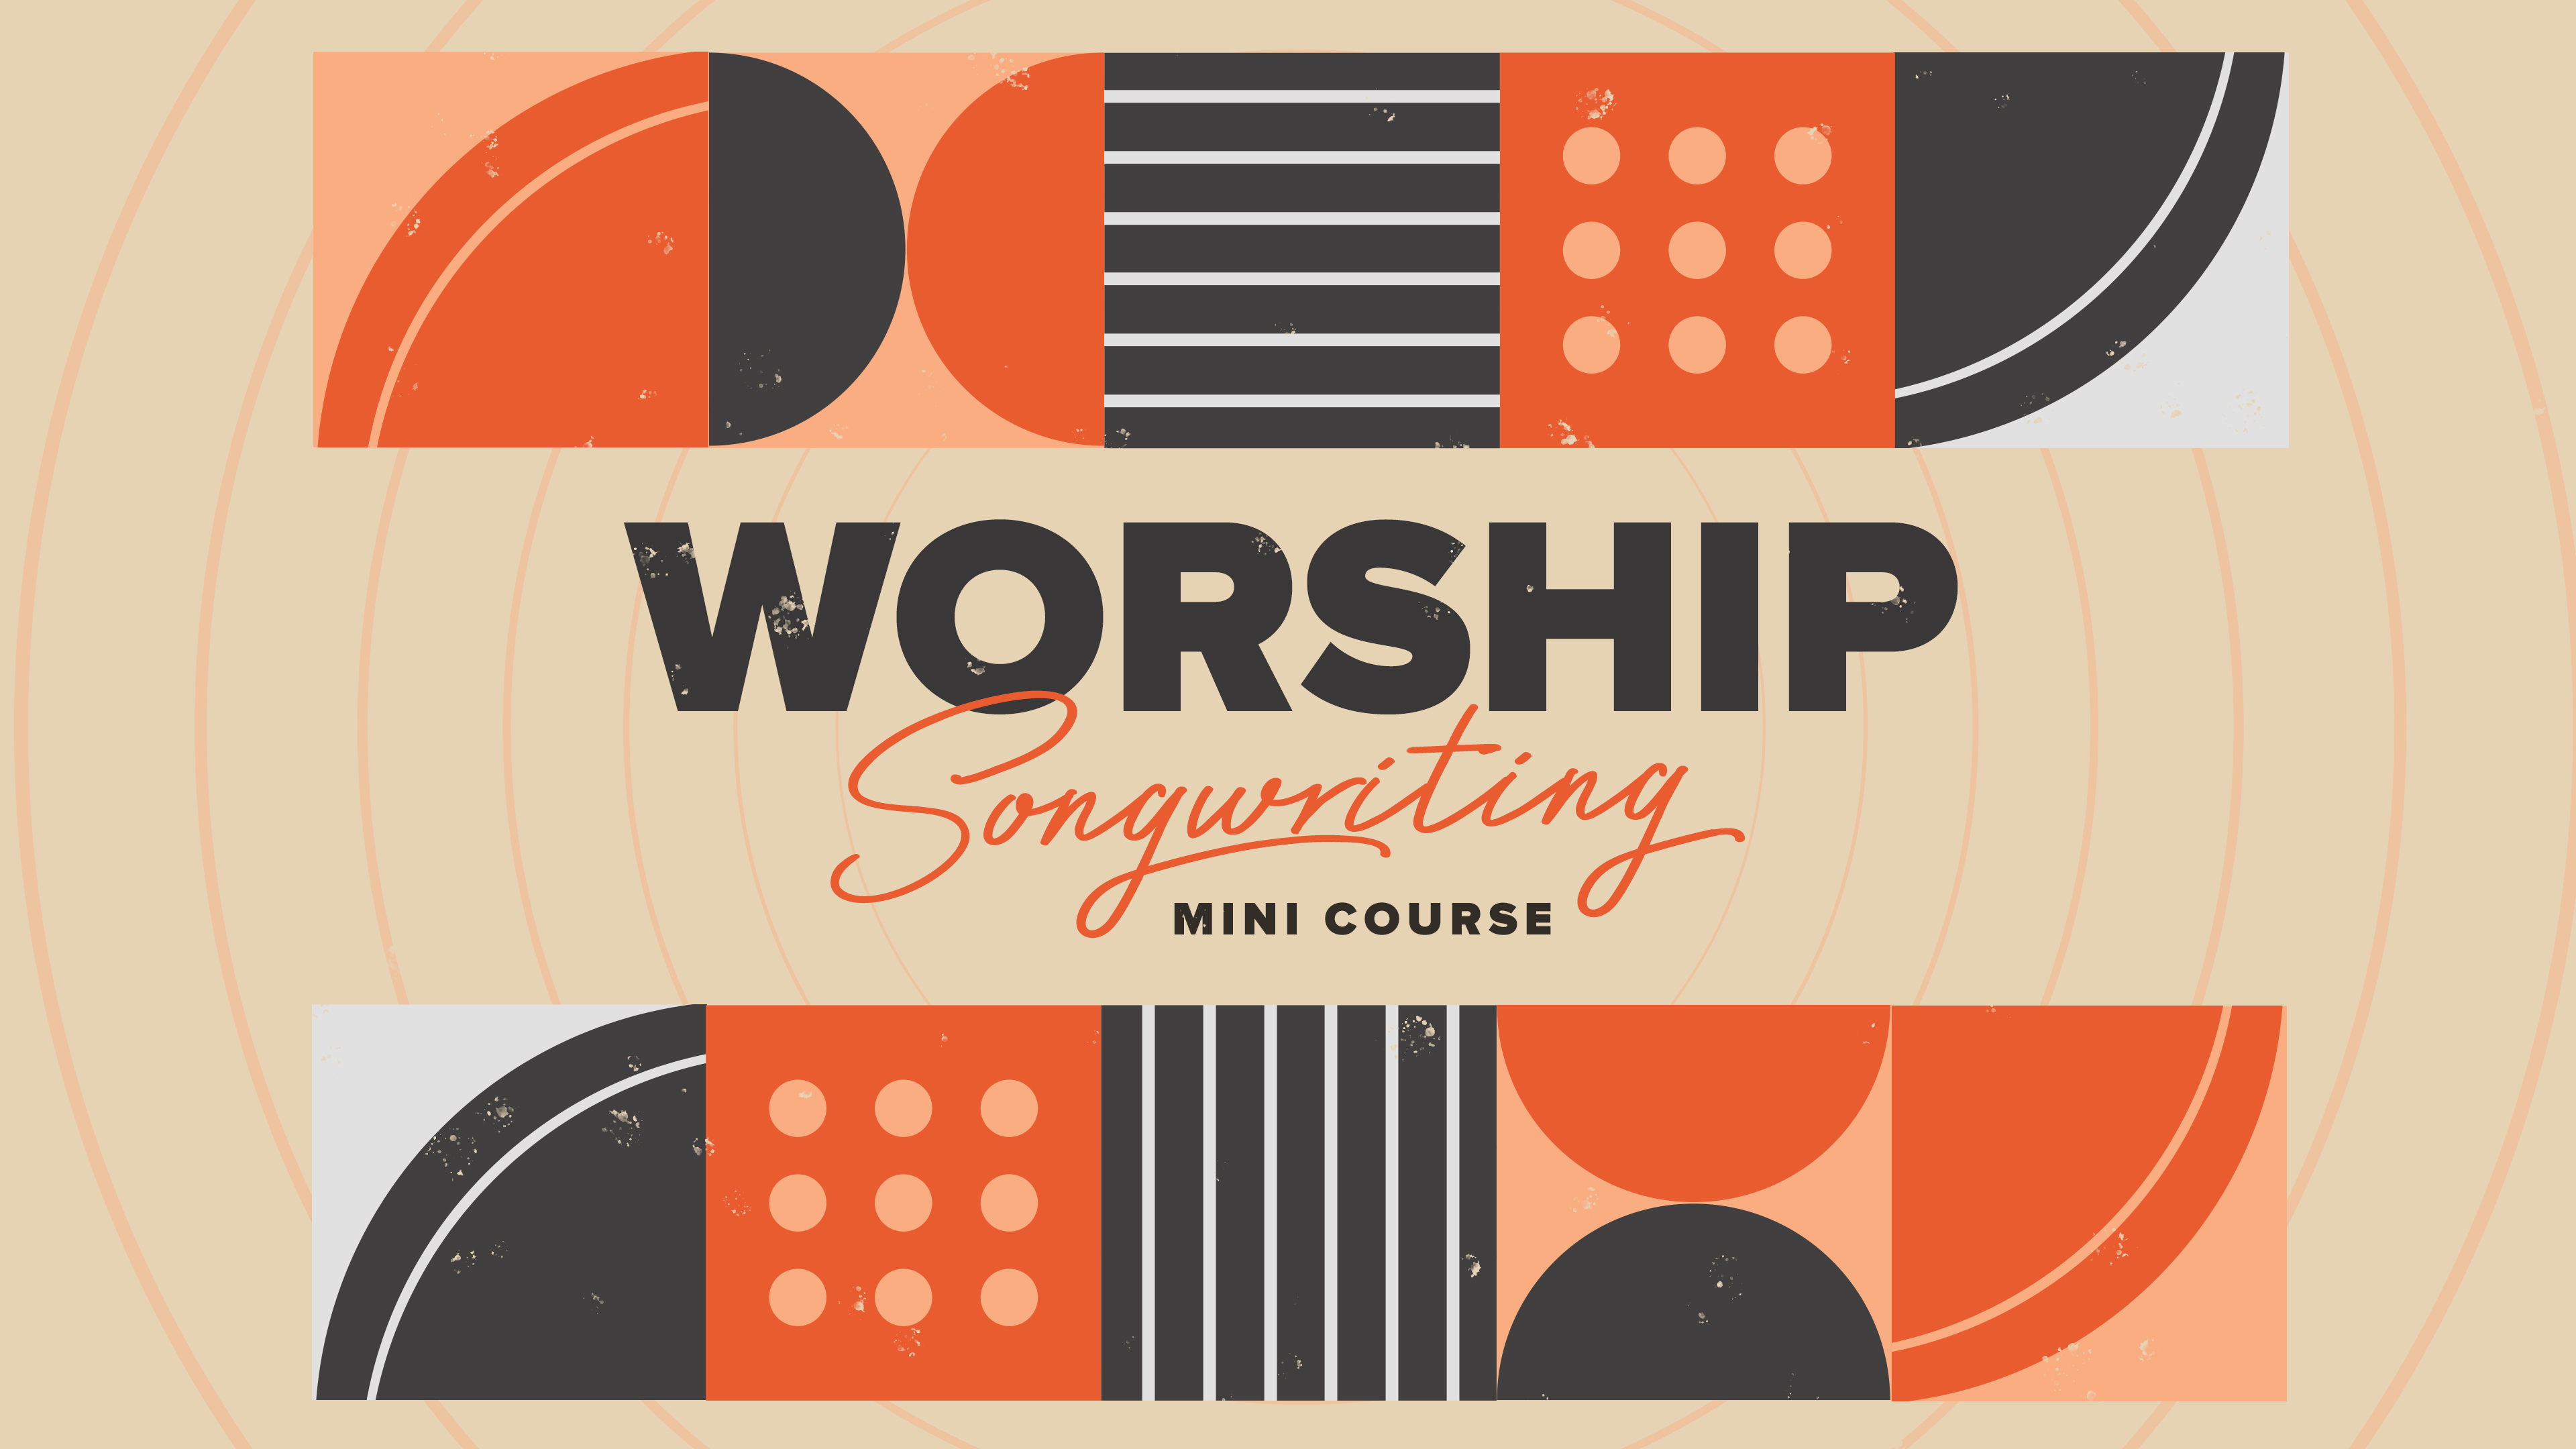 About Worship Songwriting